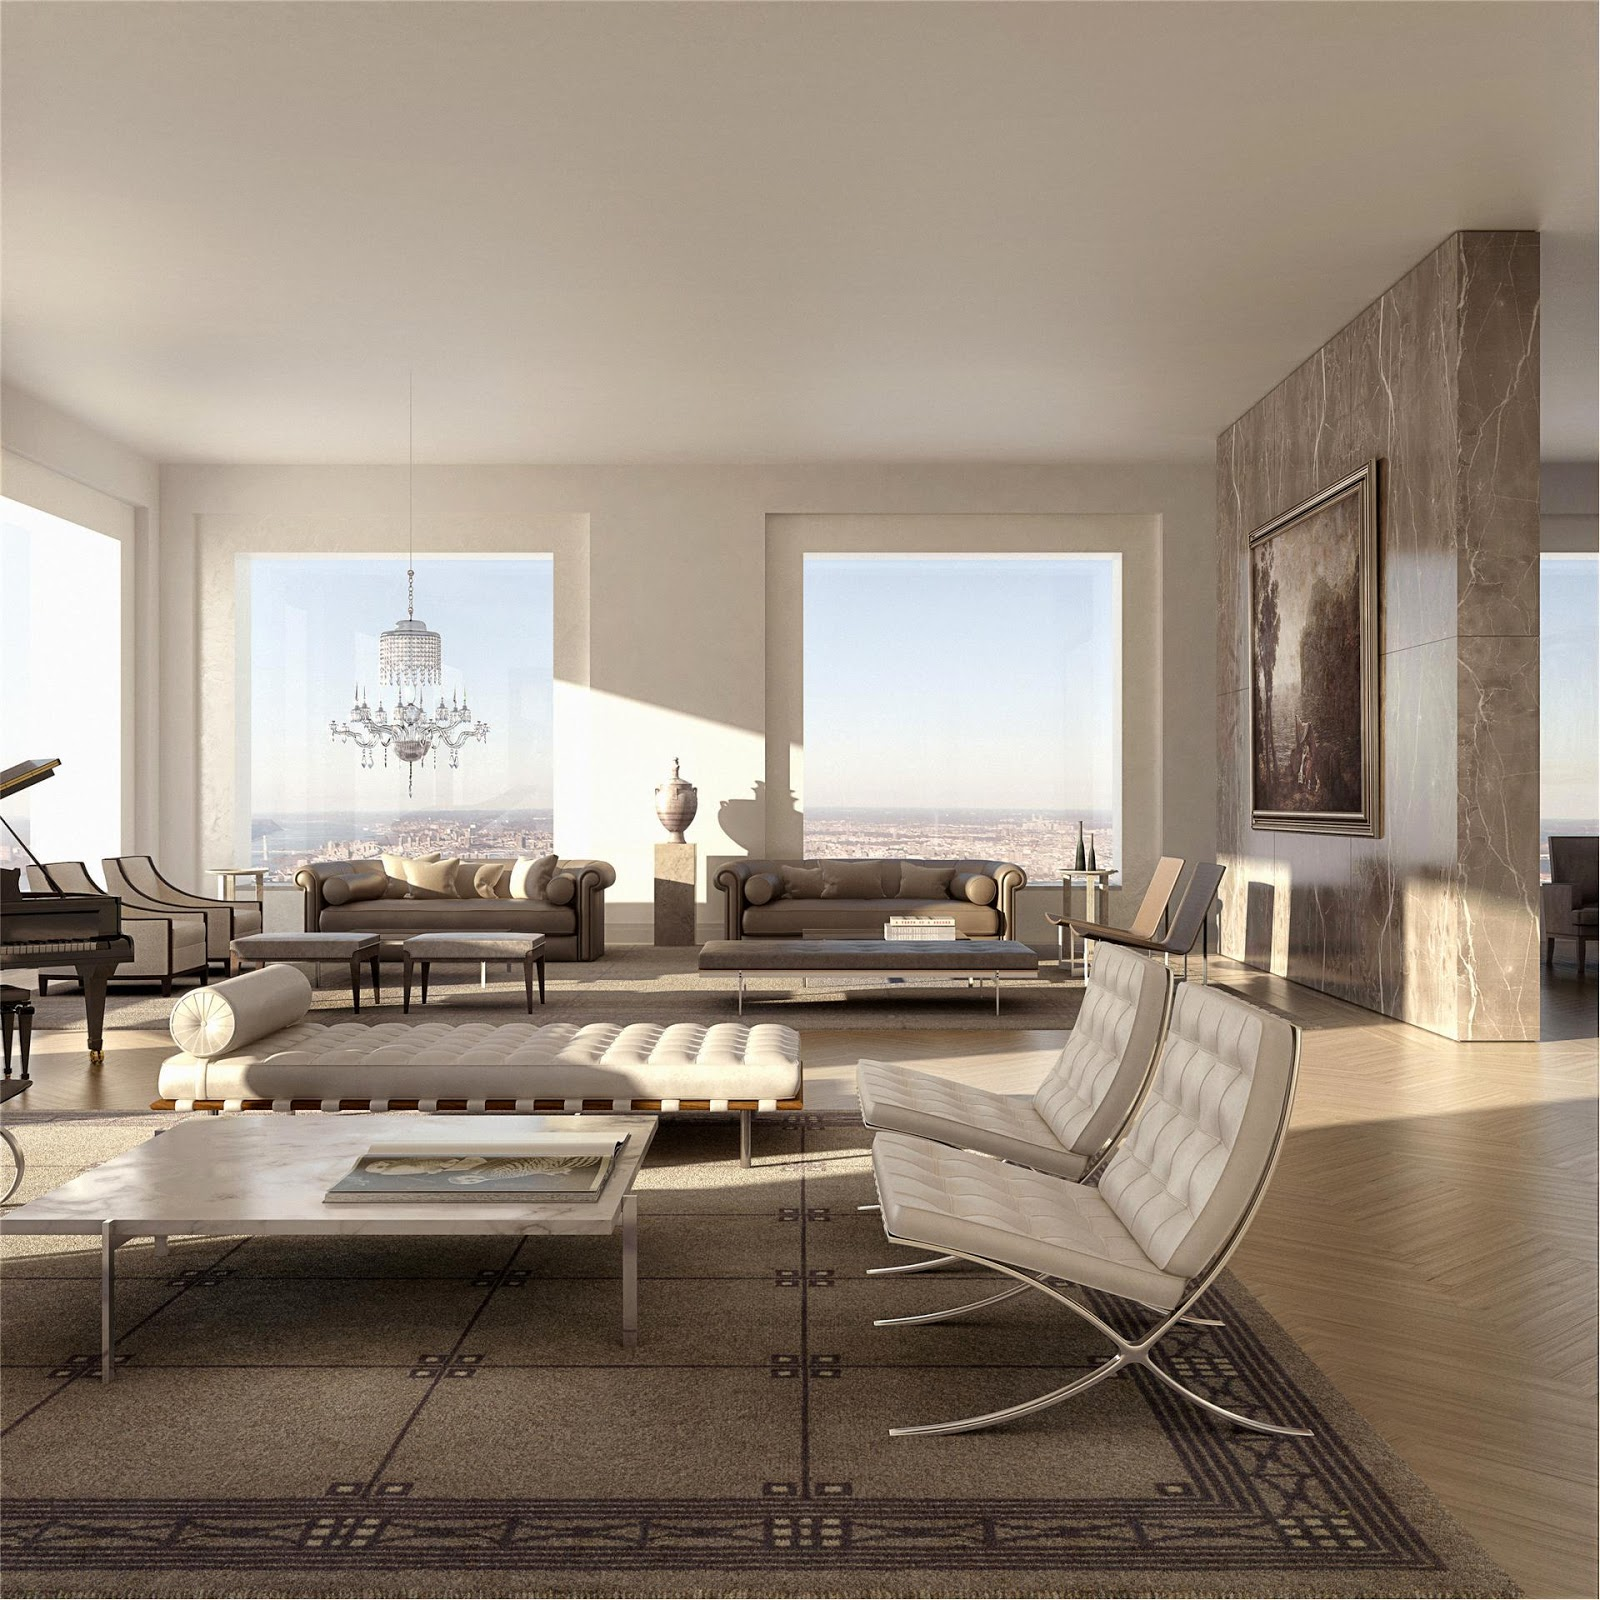 Most Expensive Apartment In Nyc: Passion For Luxury : Glorious 432 Park Avenue Skyscraper